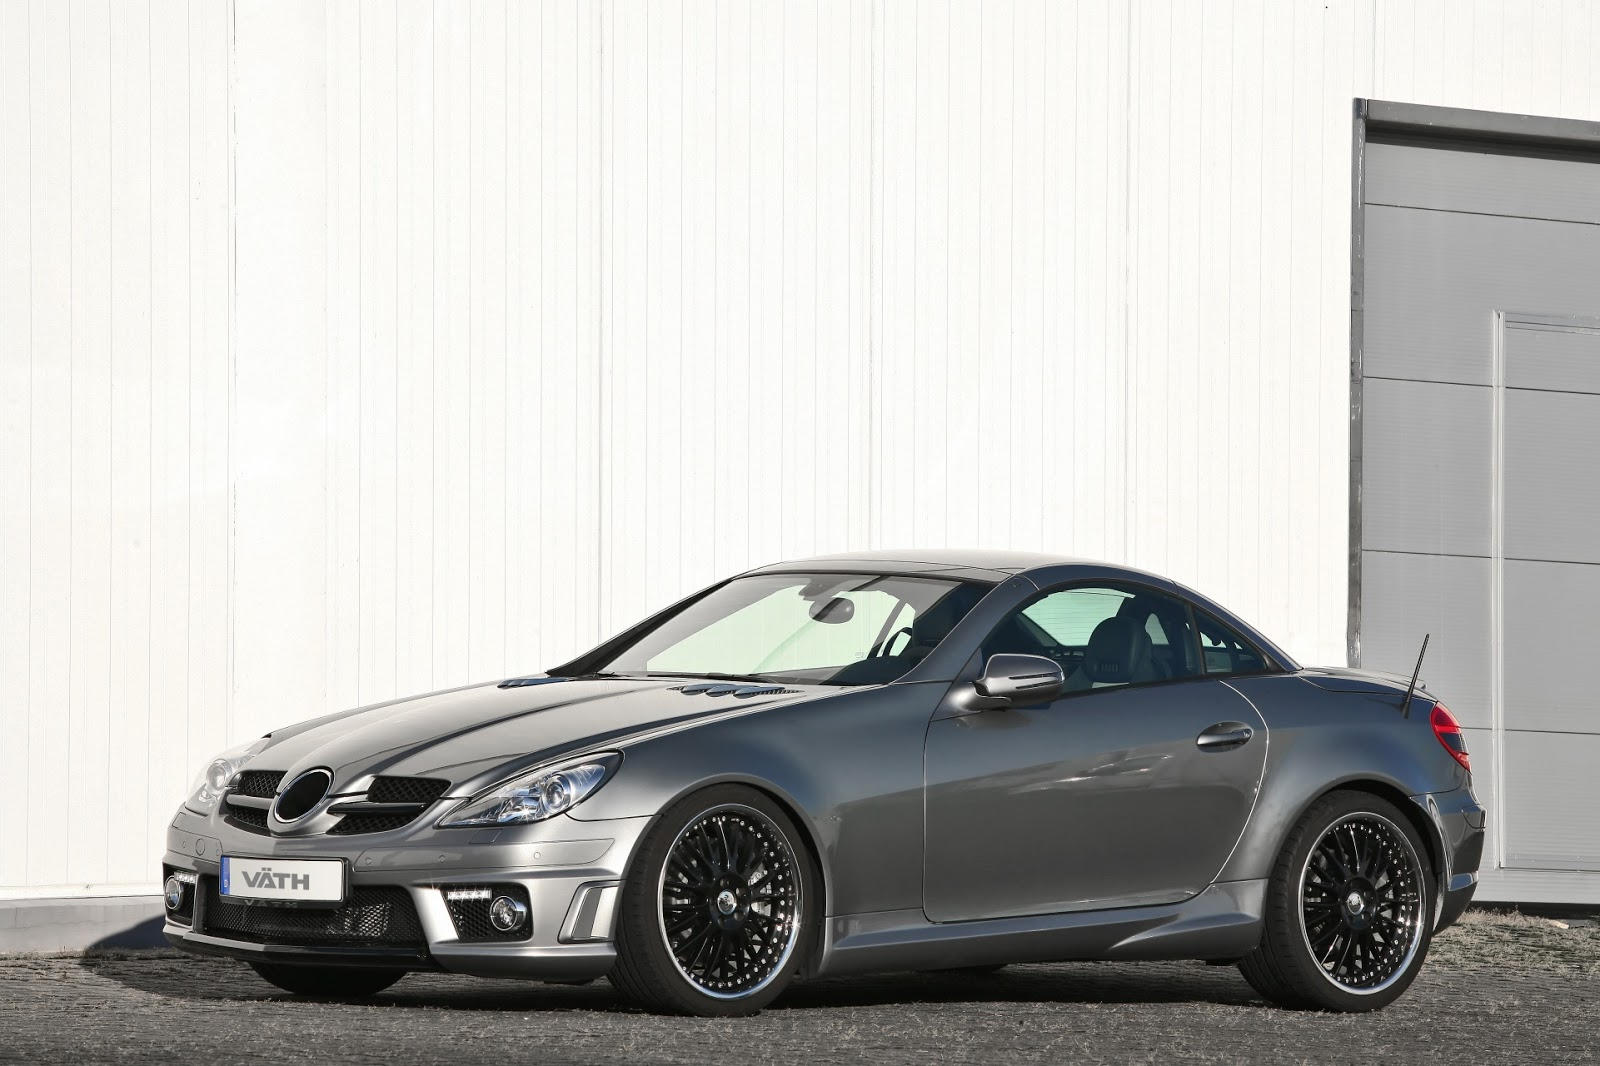 All tuning cars nz 2010 vath v58 mercedes benz slk r171 amg for 2010 mercedes benz slk